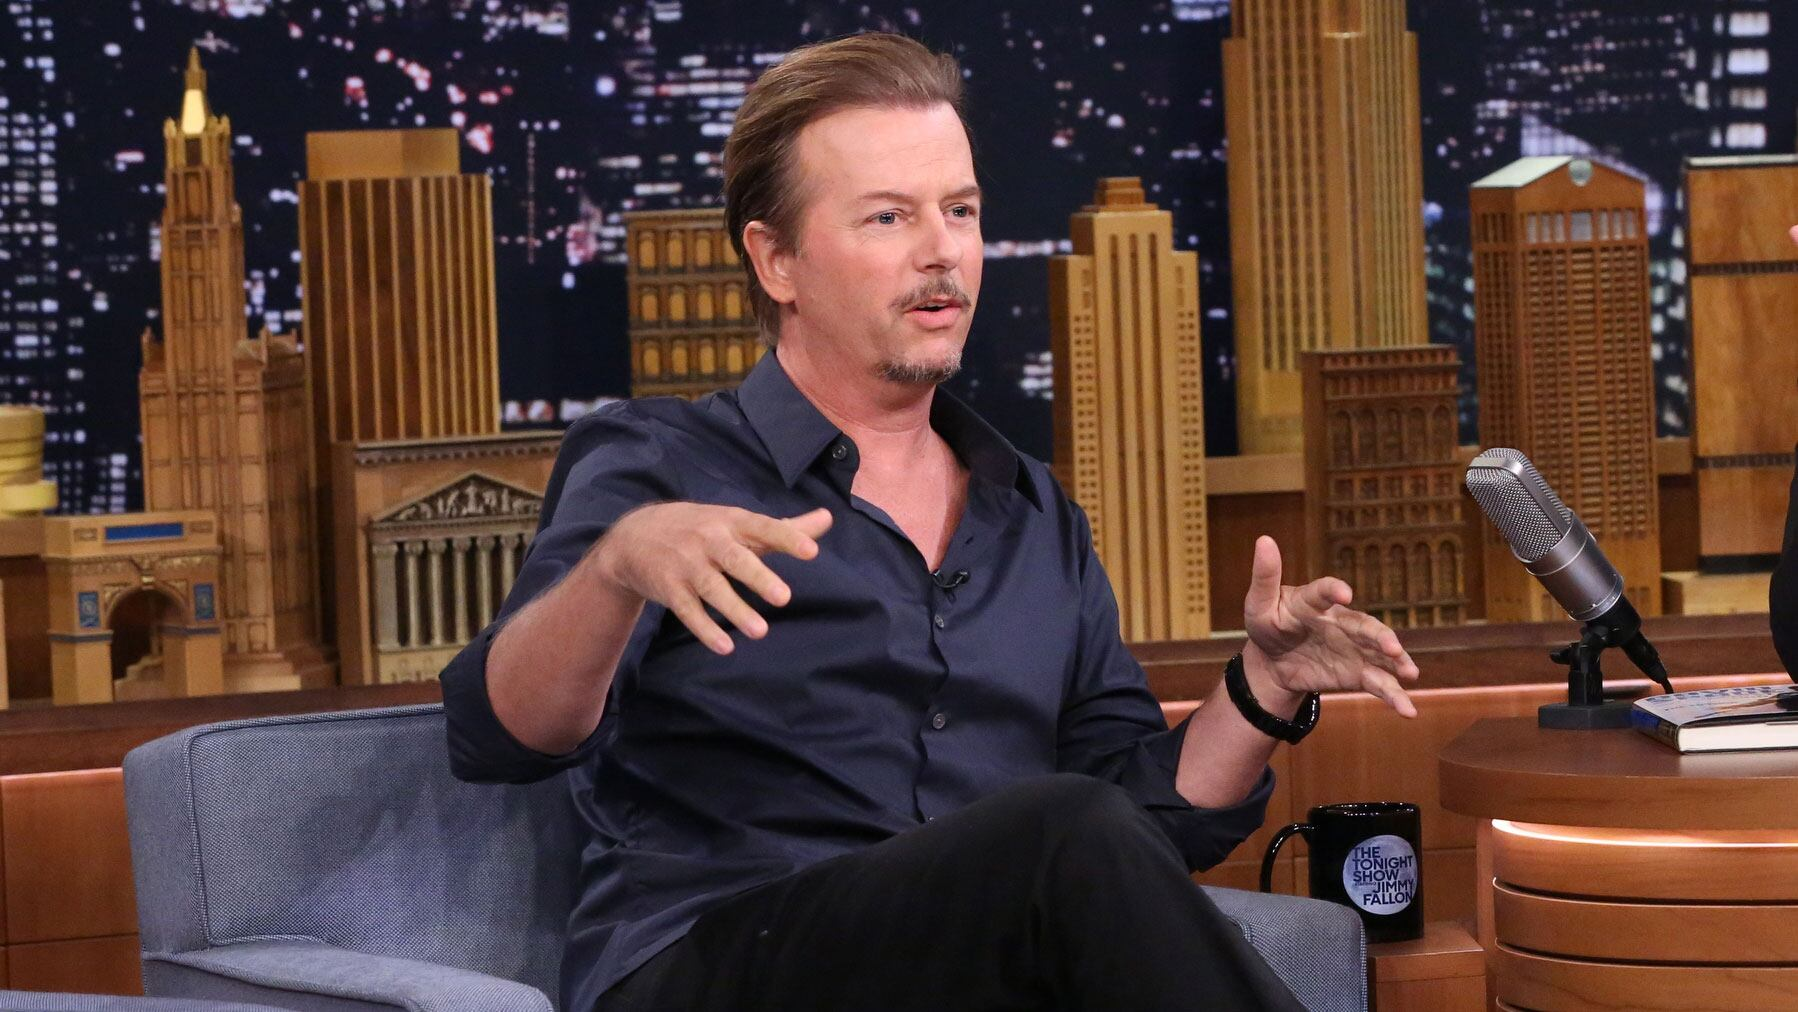 David Spade's Real Brother Sold Him Out During Frat Hazing